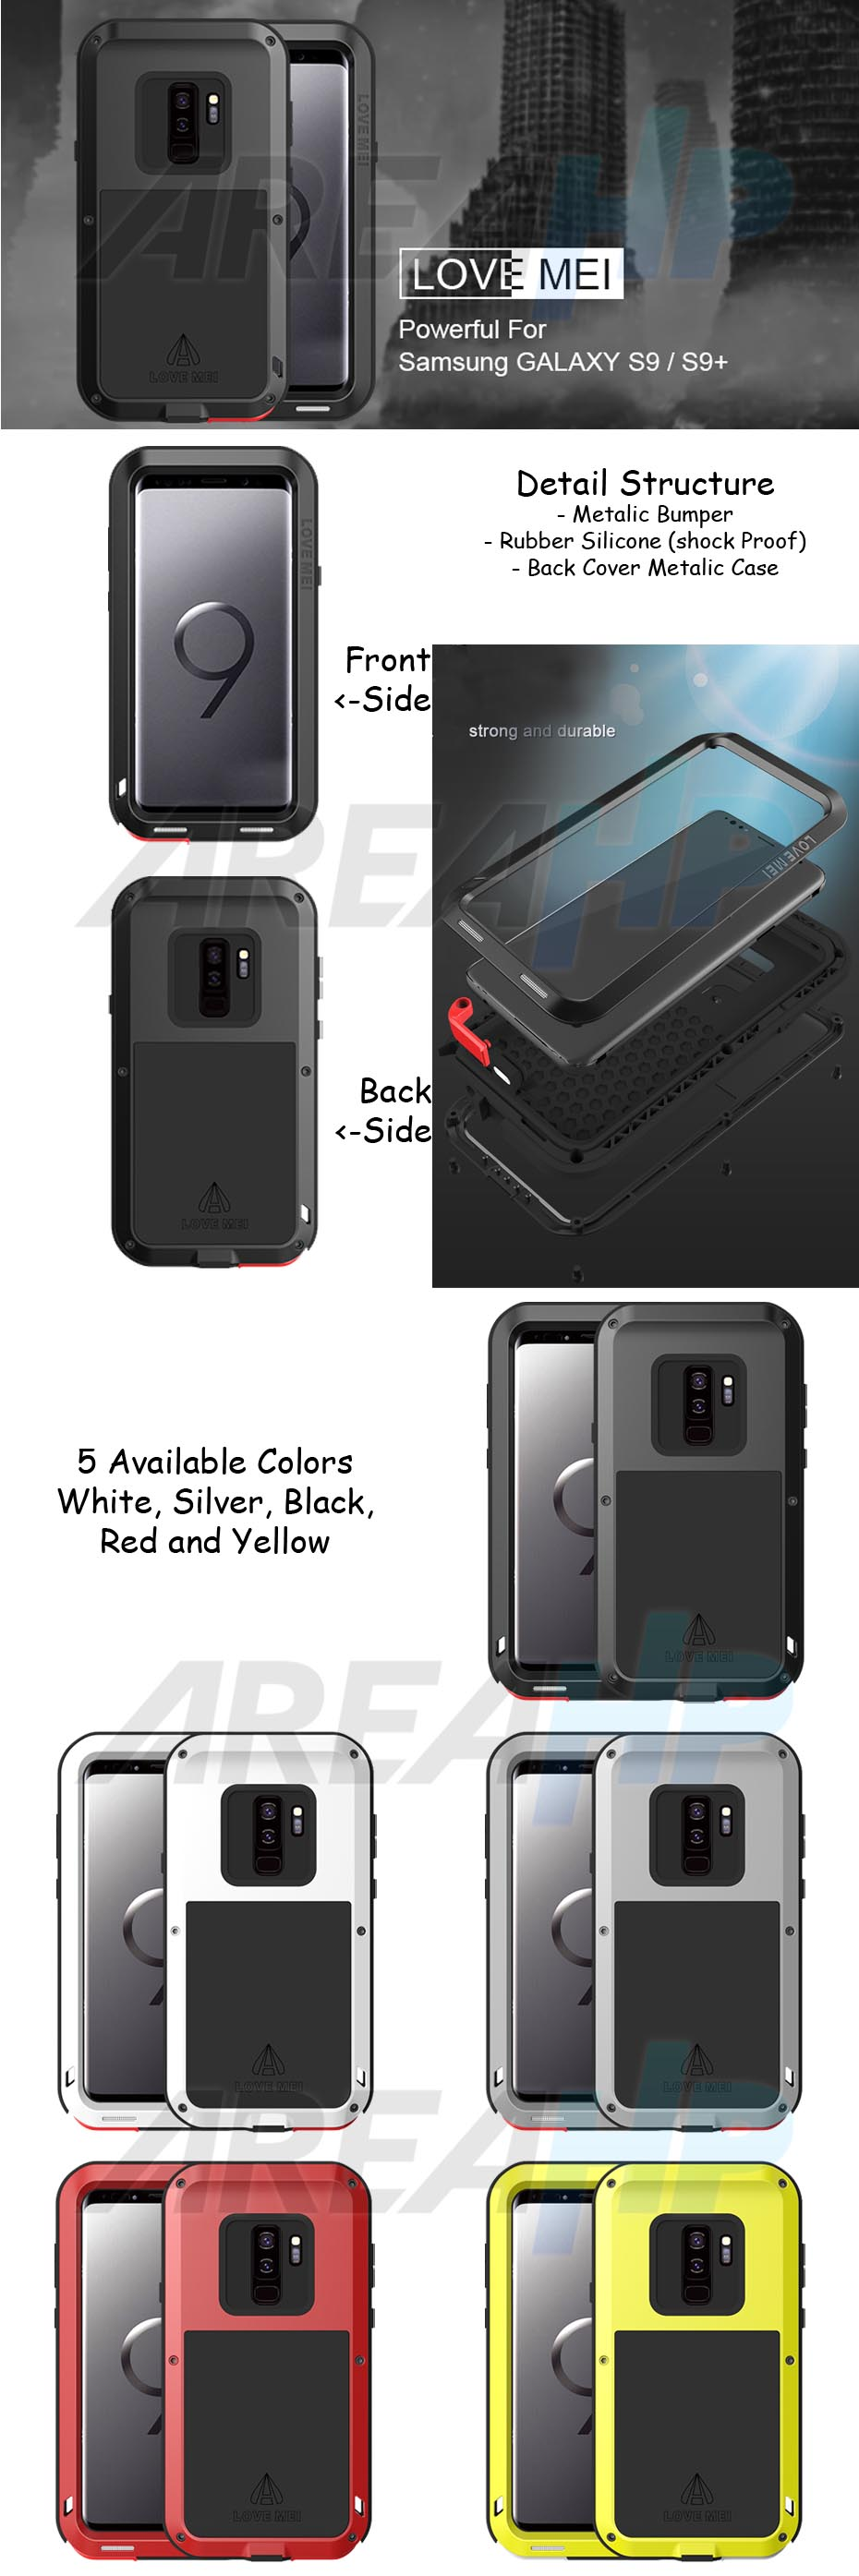 Love Mei Powerful Case for Samsung S9 Overview